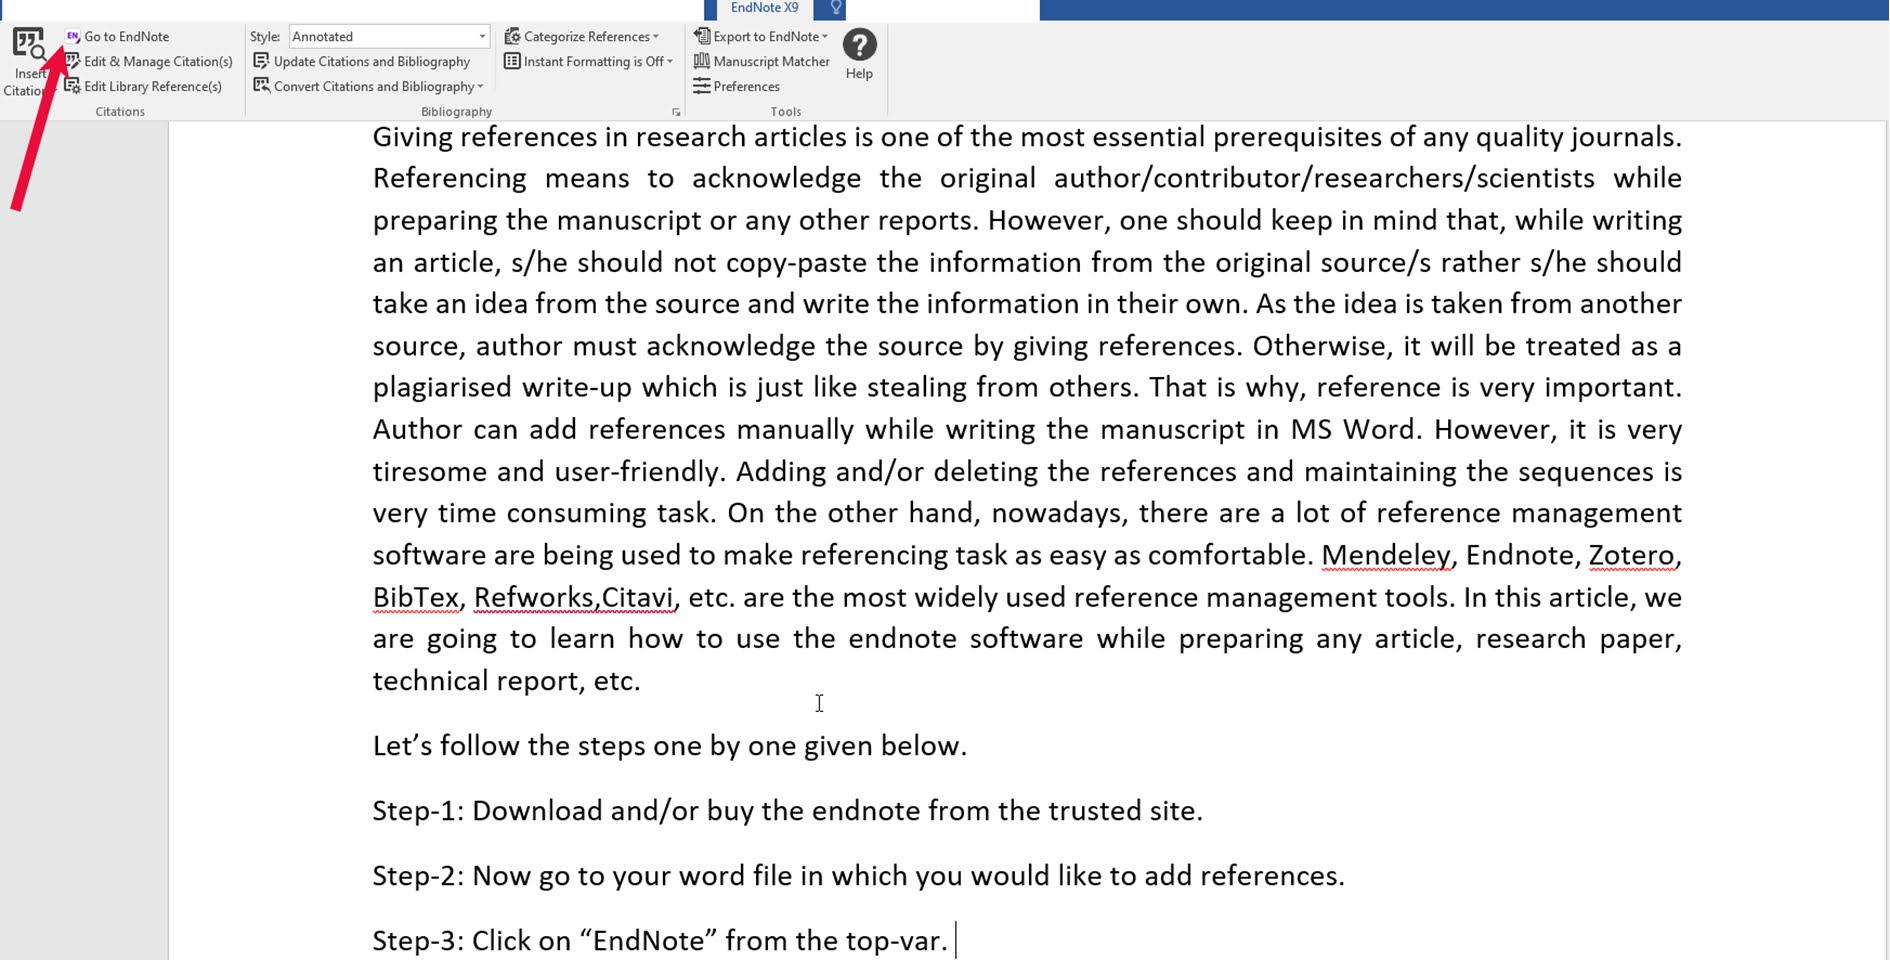 2. Reference Management by using EndNote